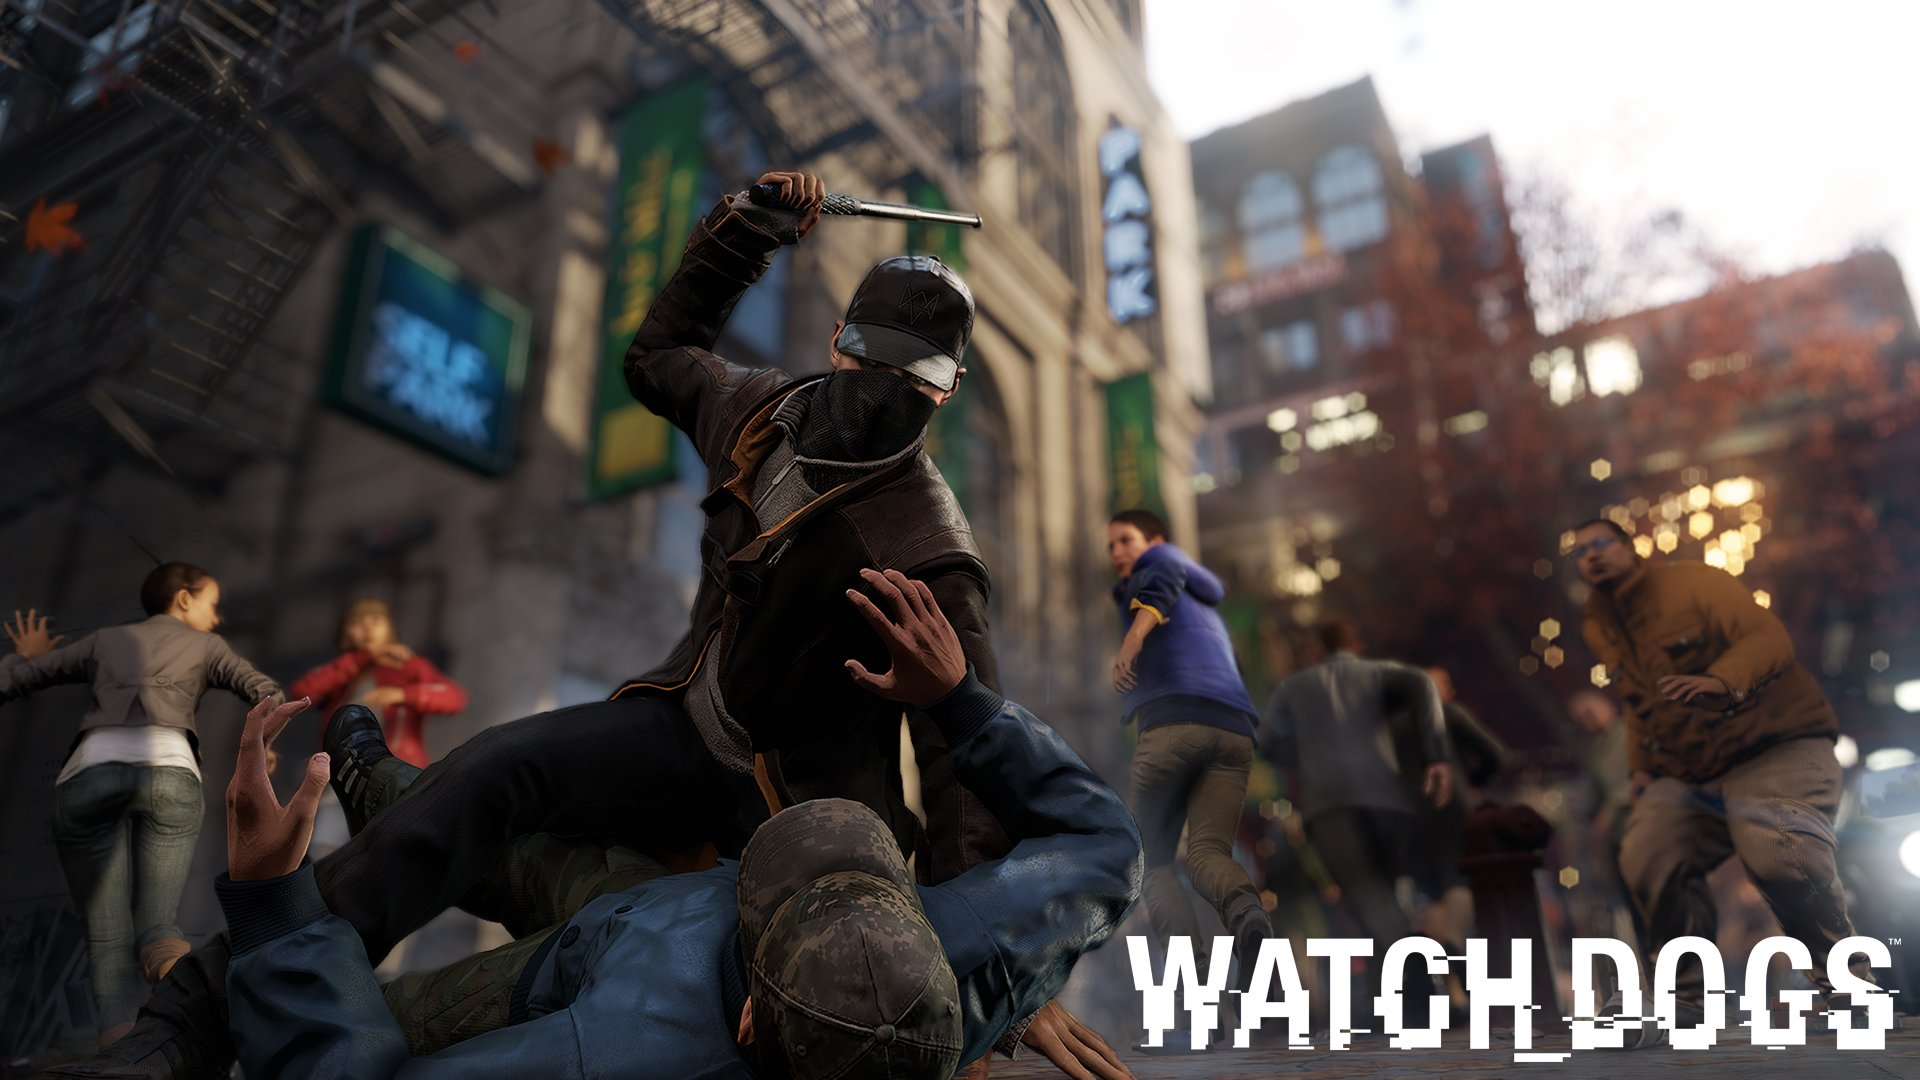 Watch Dogs – 35 фактов об игре после четырех часов геймплея. - Изображение 1